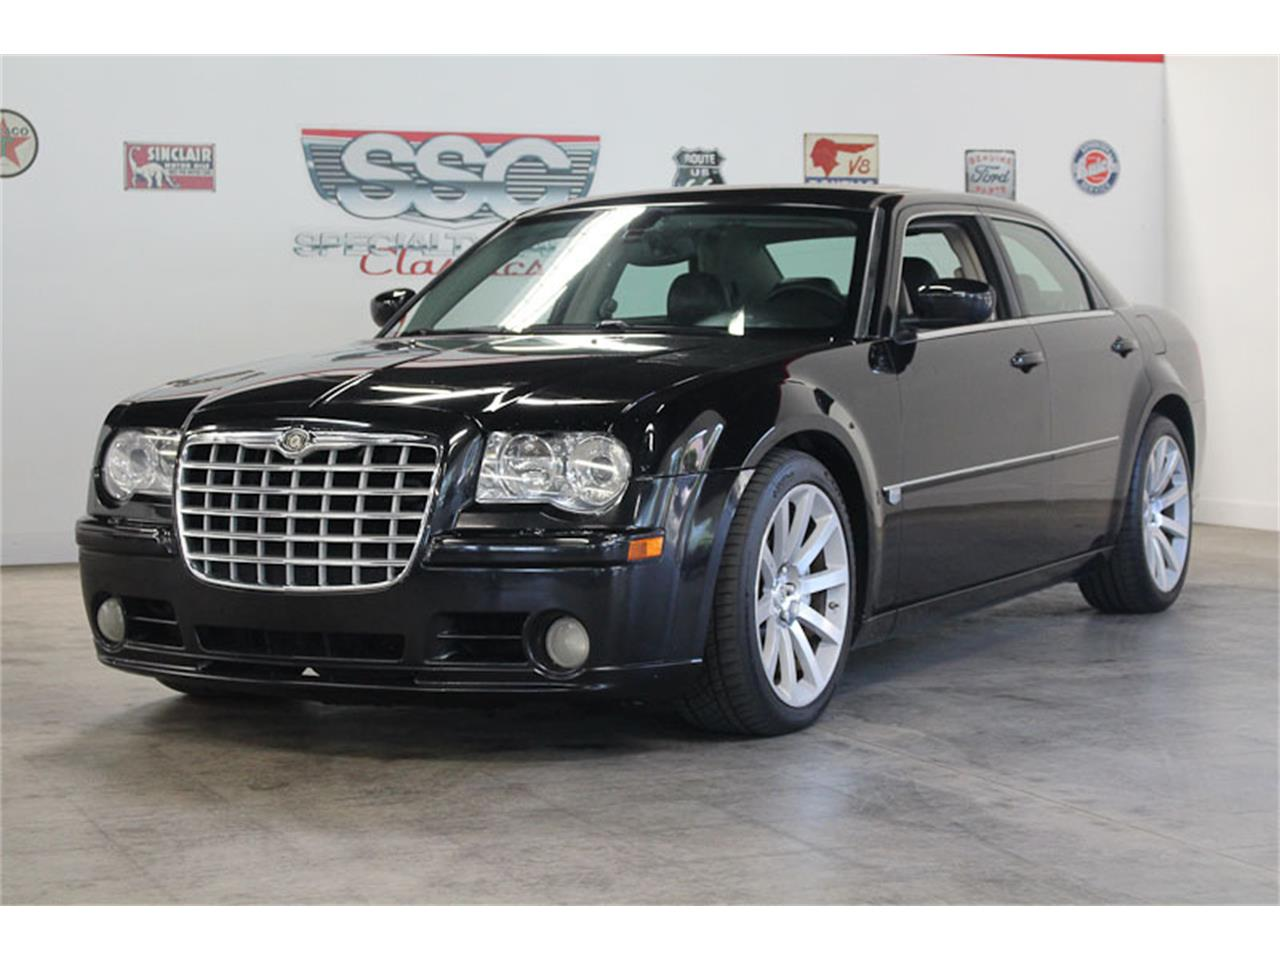 Large Picture of 2007 Chrysler 300 located in Fairfield California - $9,900.00 - M9O4